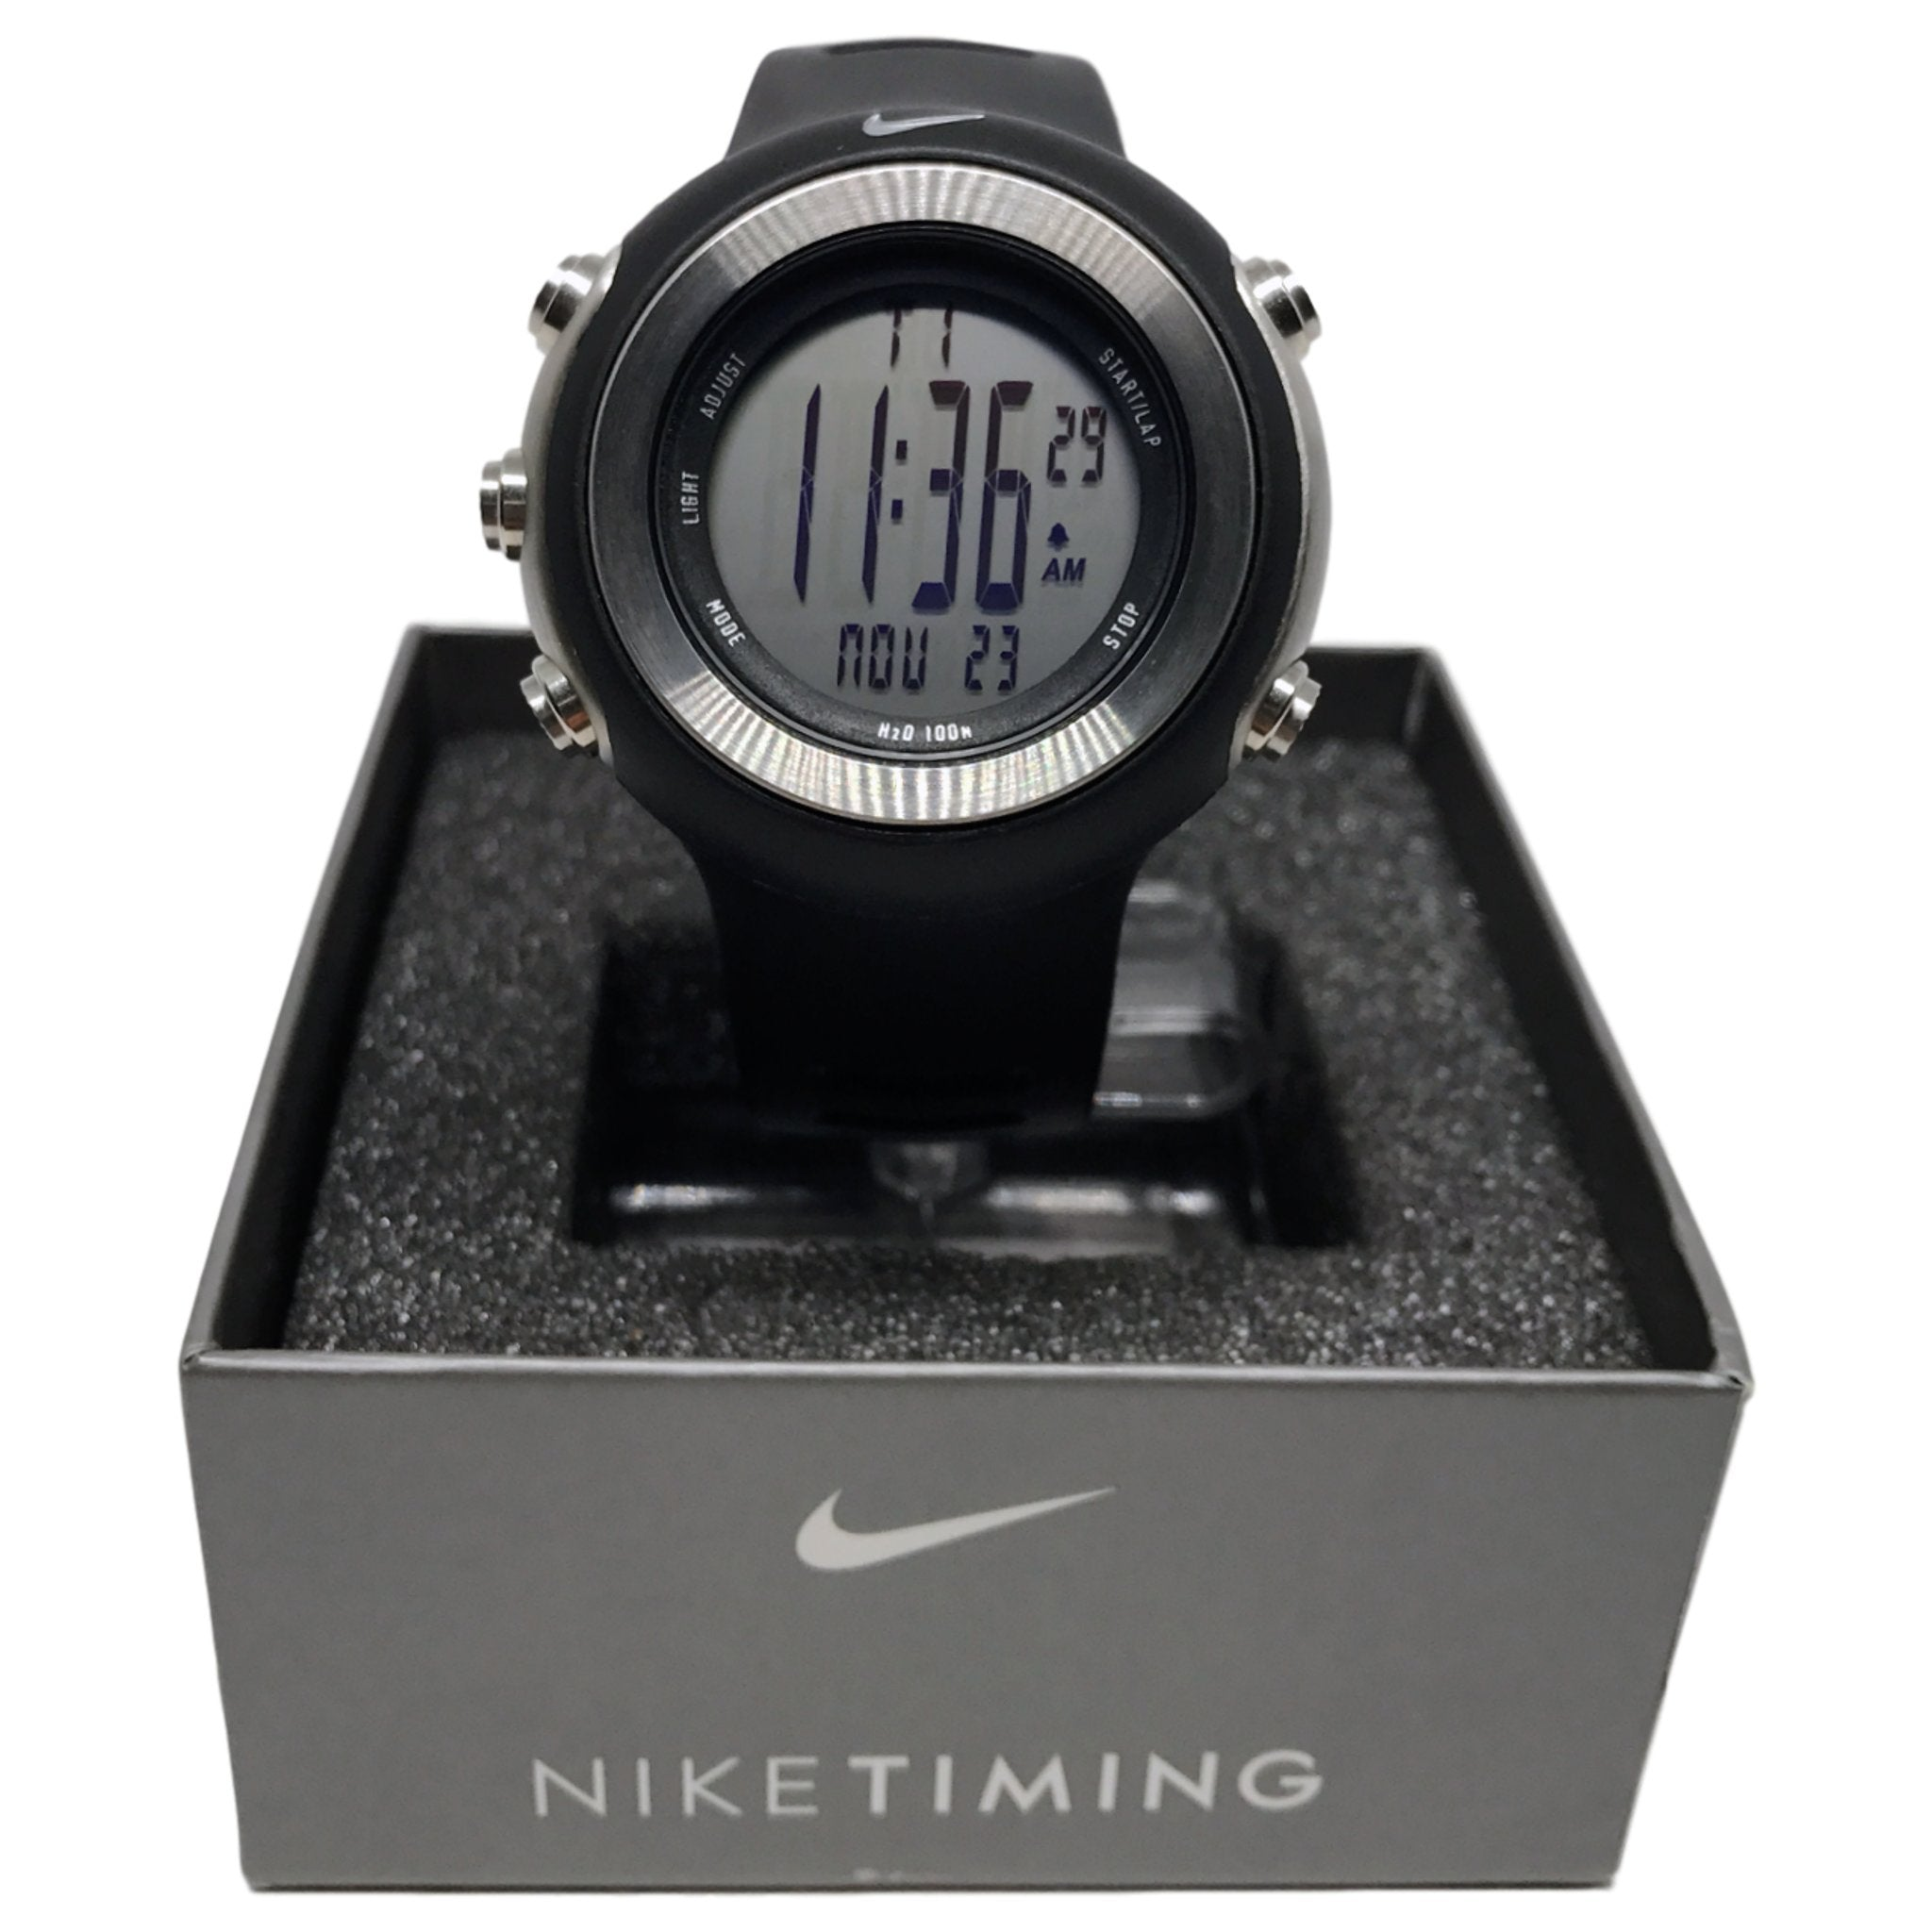 Anual Evolucionar Accesible  Nike Oregon Series Digital Super Watch WA0024-001 | Rare Find | - Elevn:59